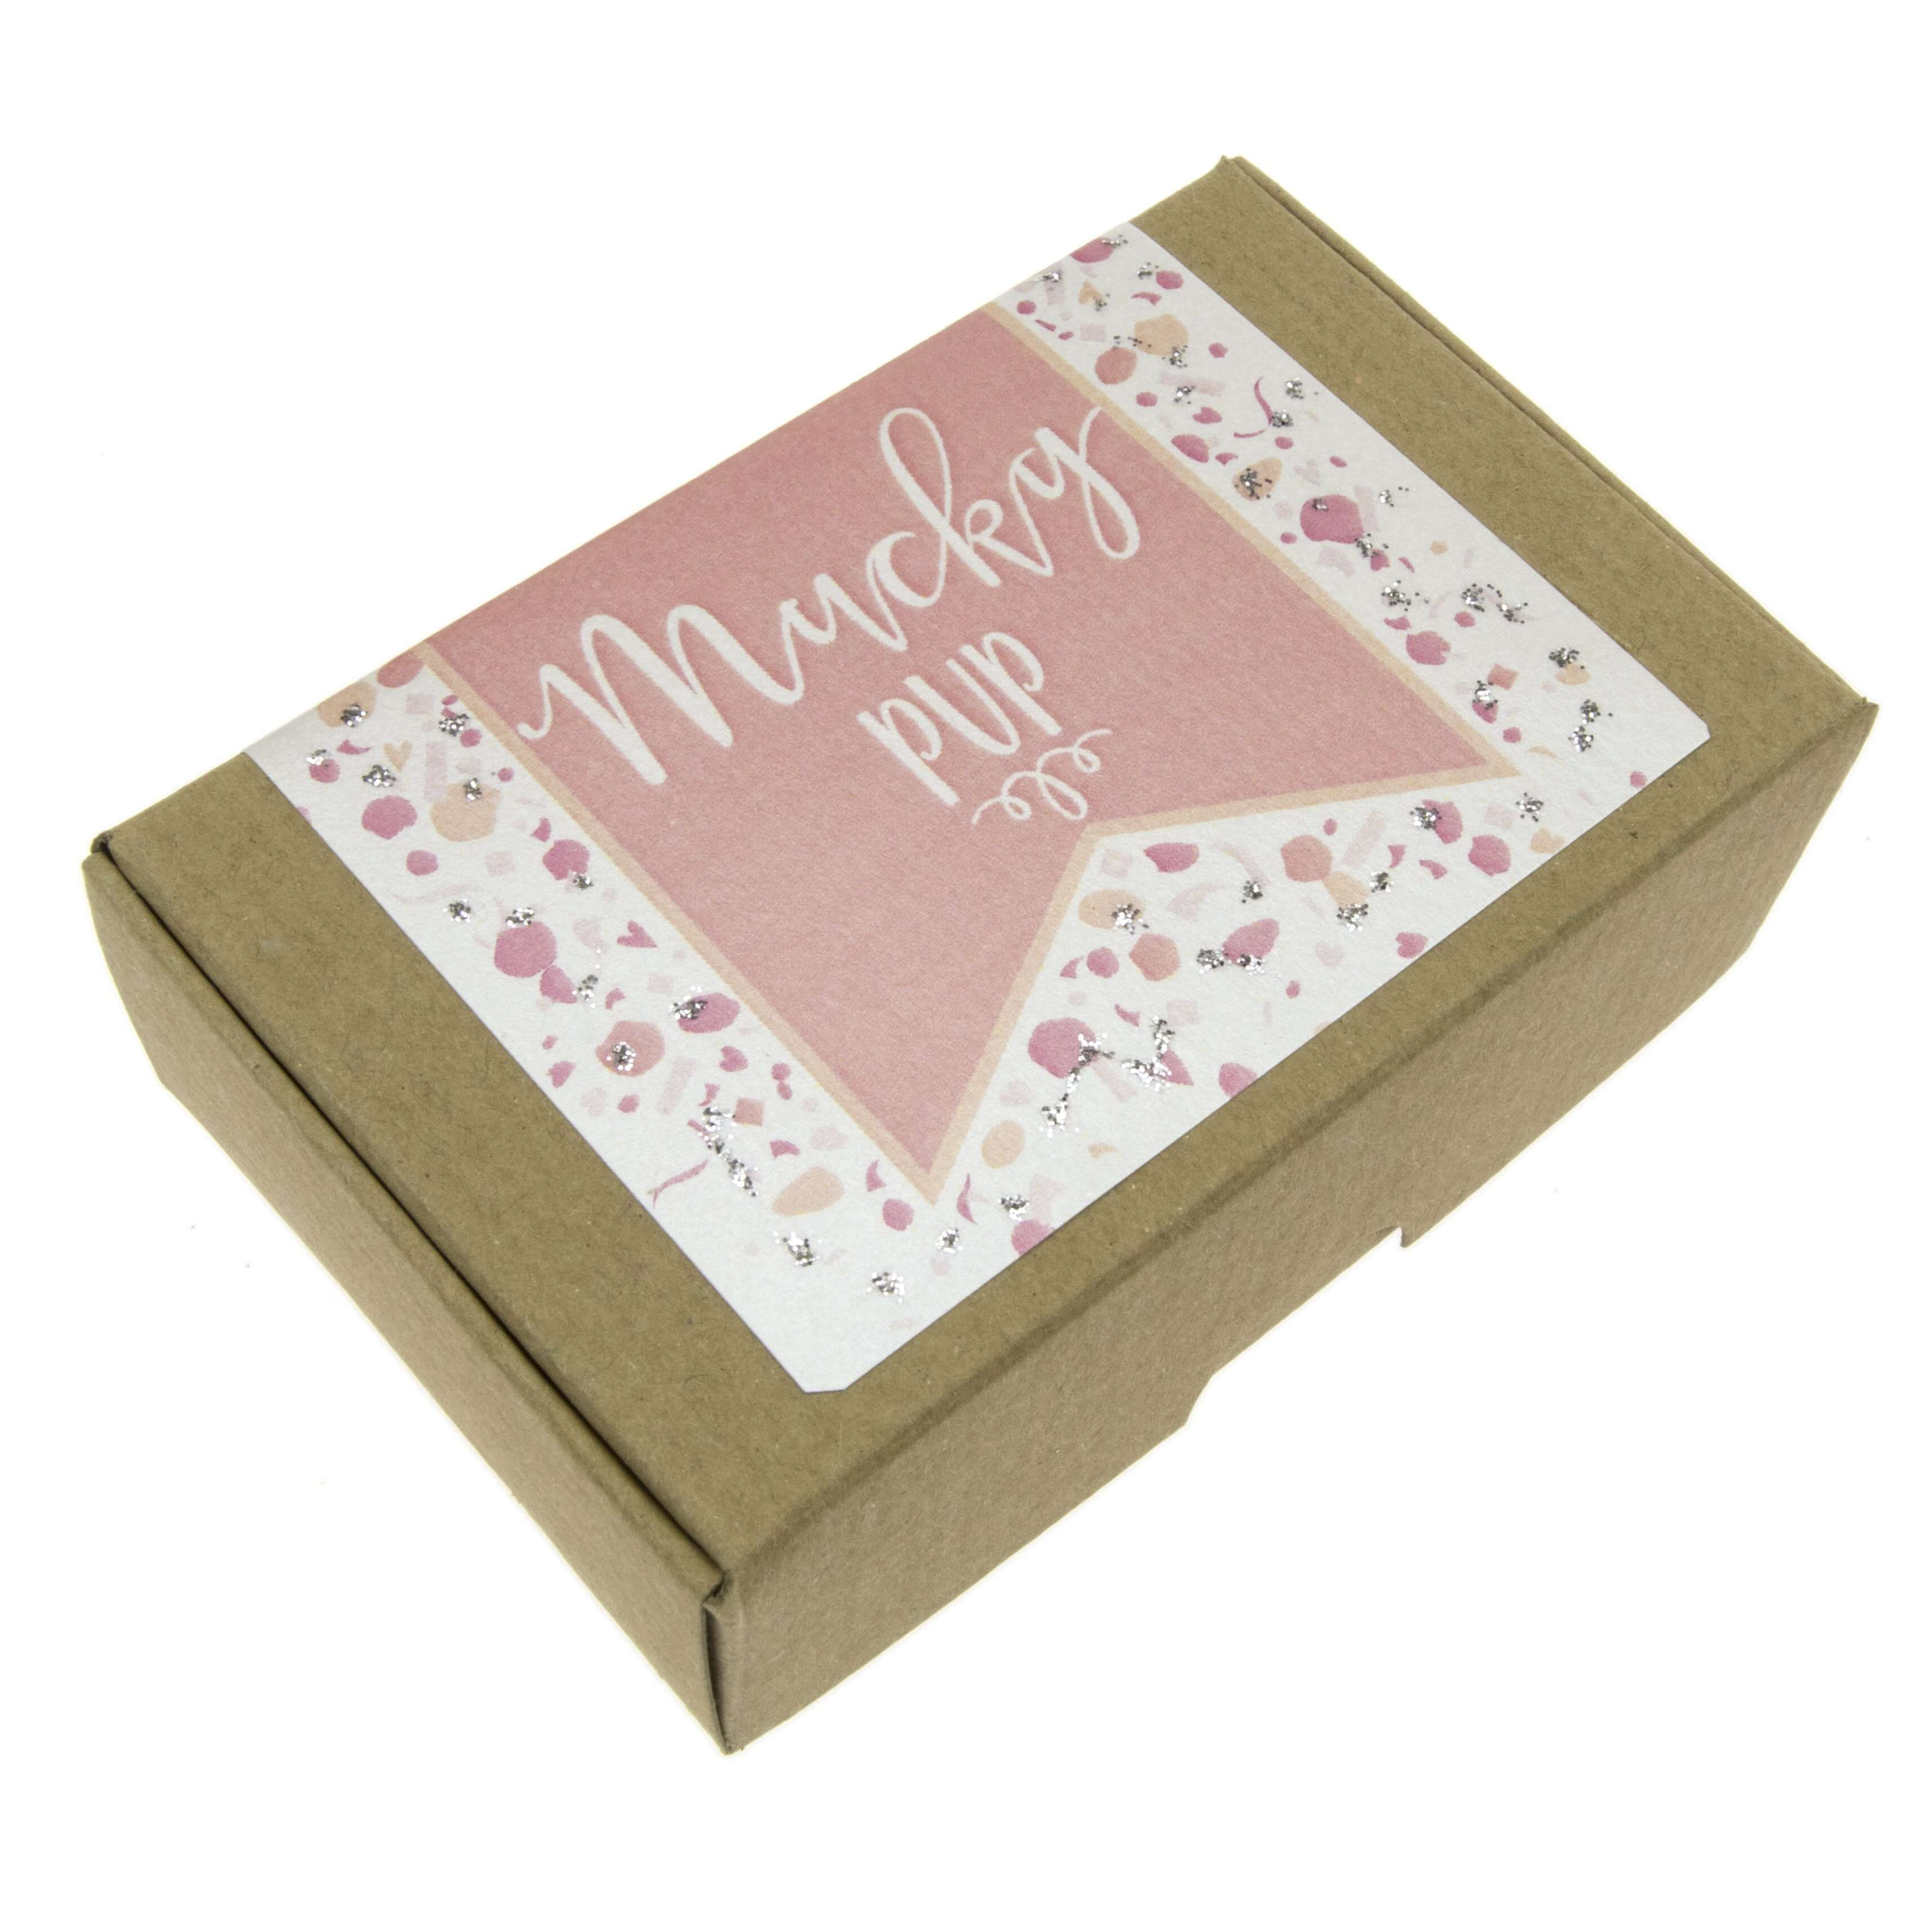 Mucky Pup Gift Soap